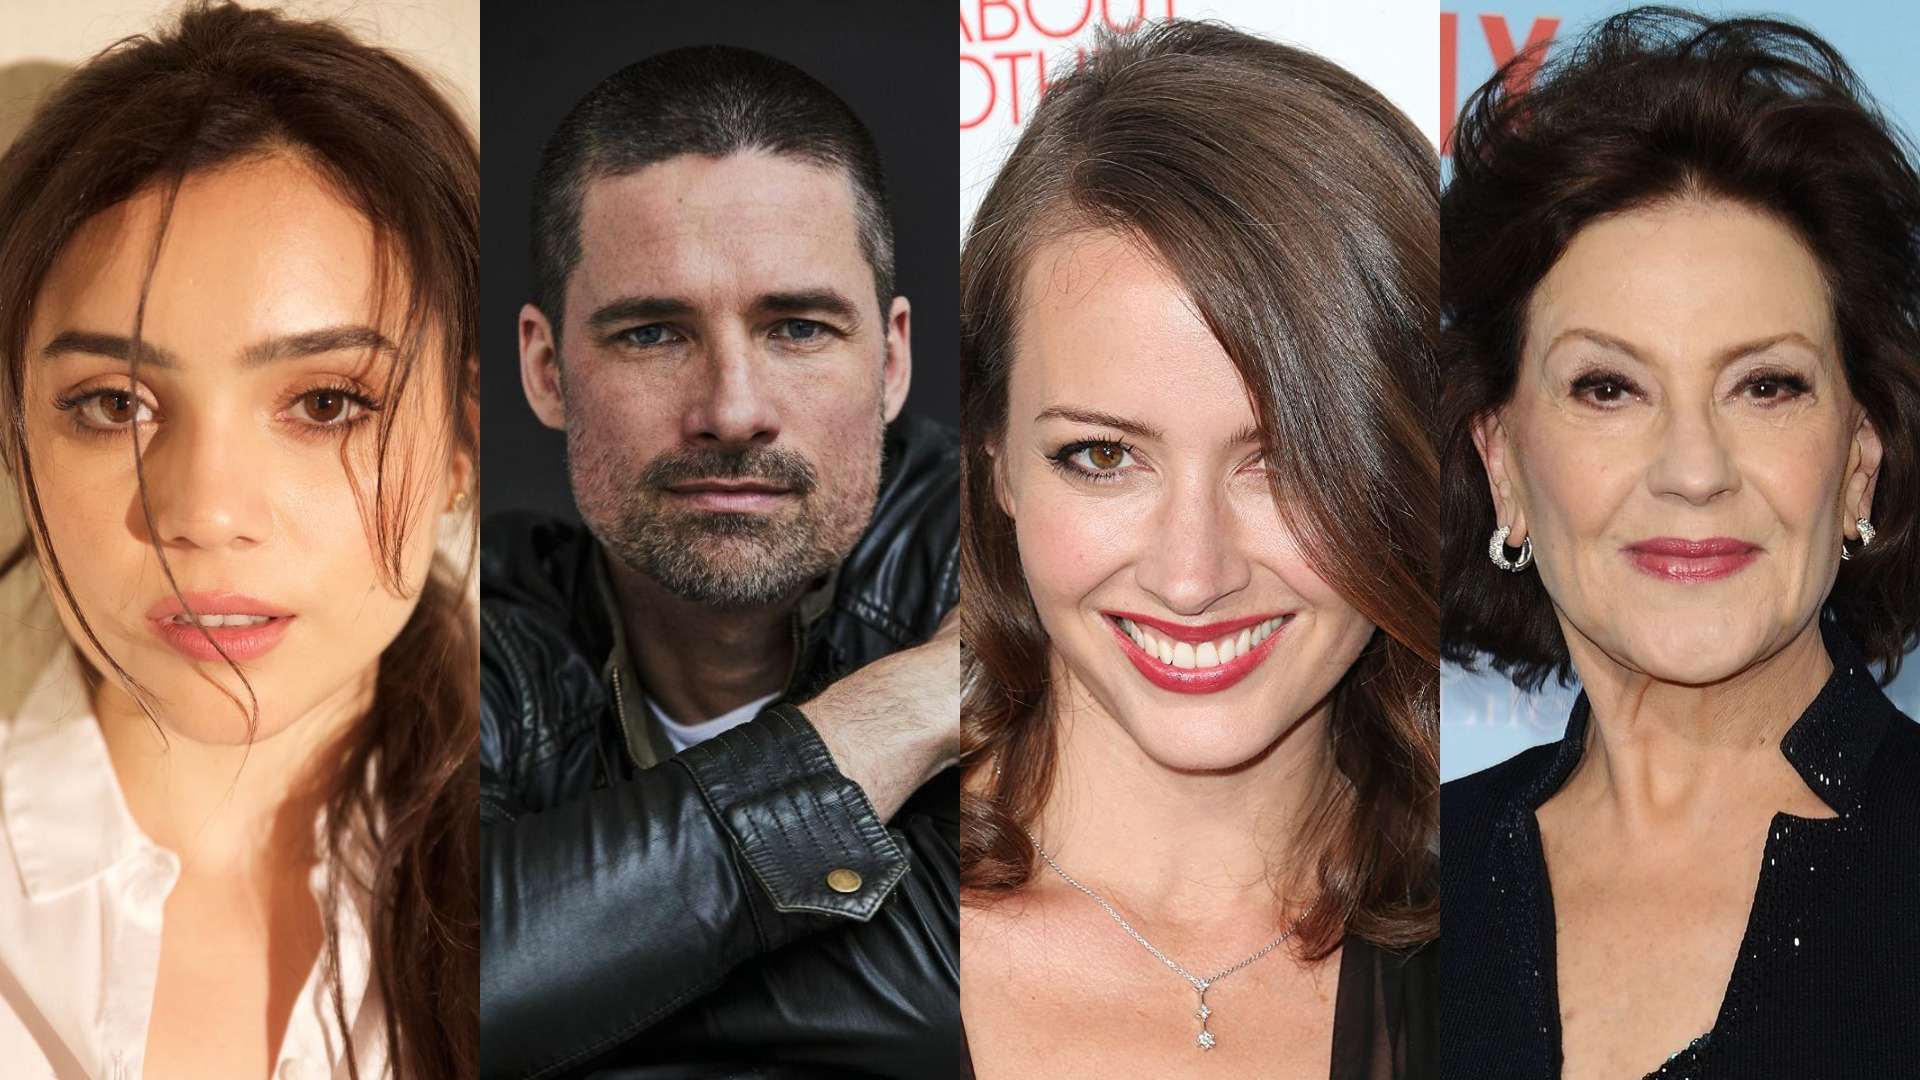 Deadline is reporting that Freeform have ordered the 'Hitchcockian' nanny drama pilot from Julie Durk which will star Andrea Londo, Warren Christie, Amy Acker, Kelly Bishop, Jon Ecker, Lex Lumpkin, Henry Joseph Samiri and Aliyah Royale.